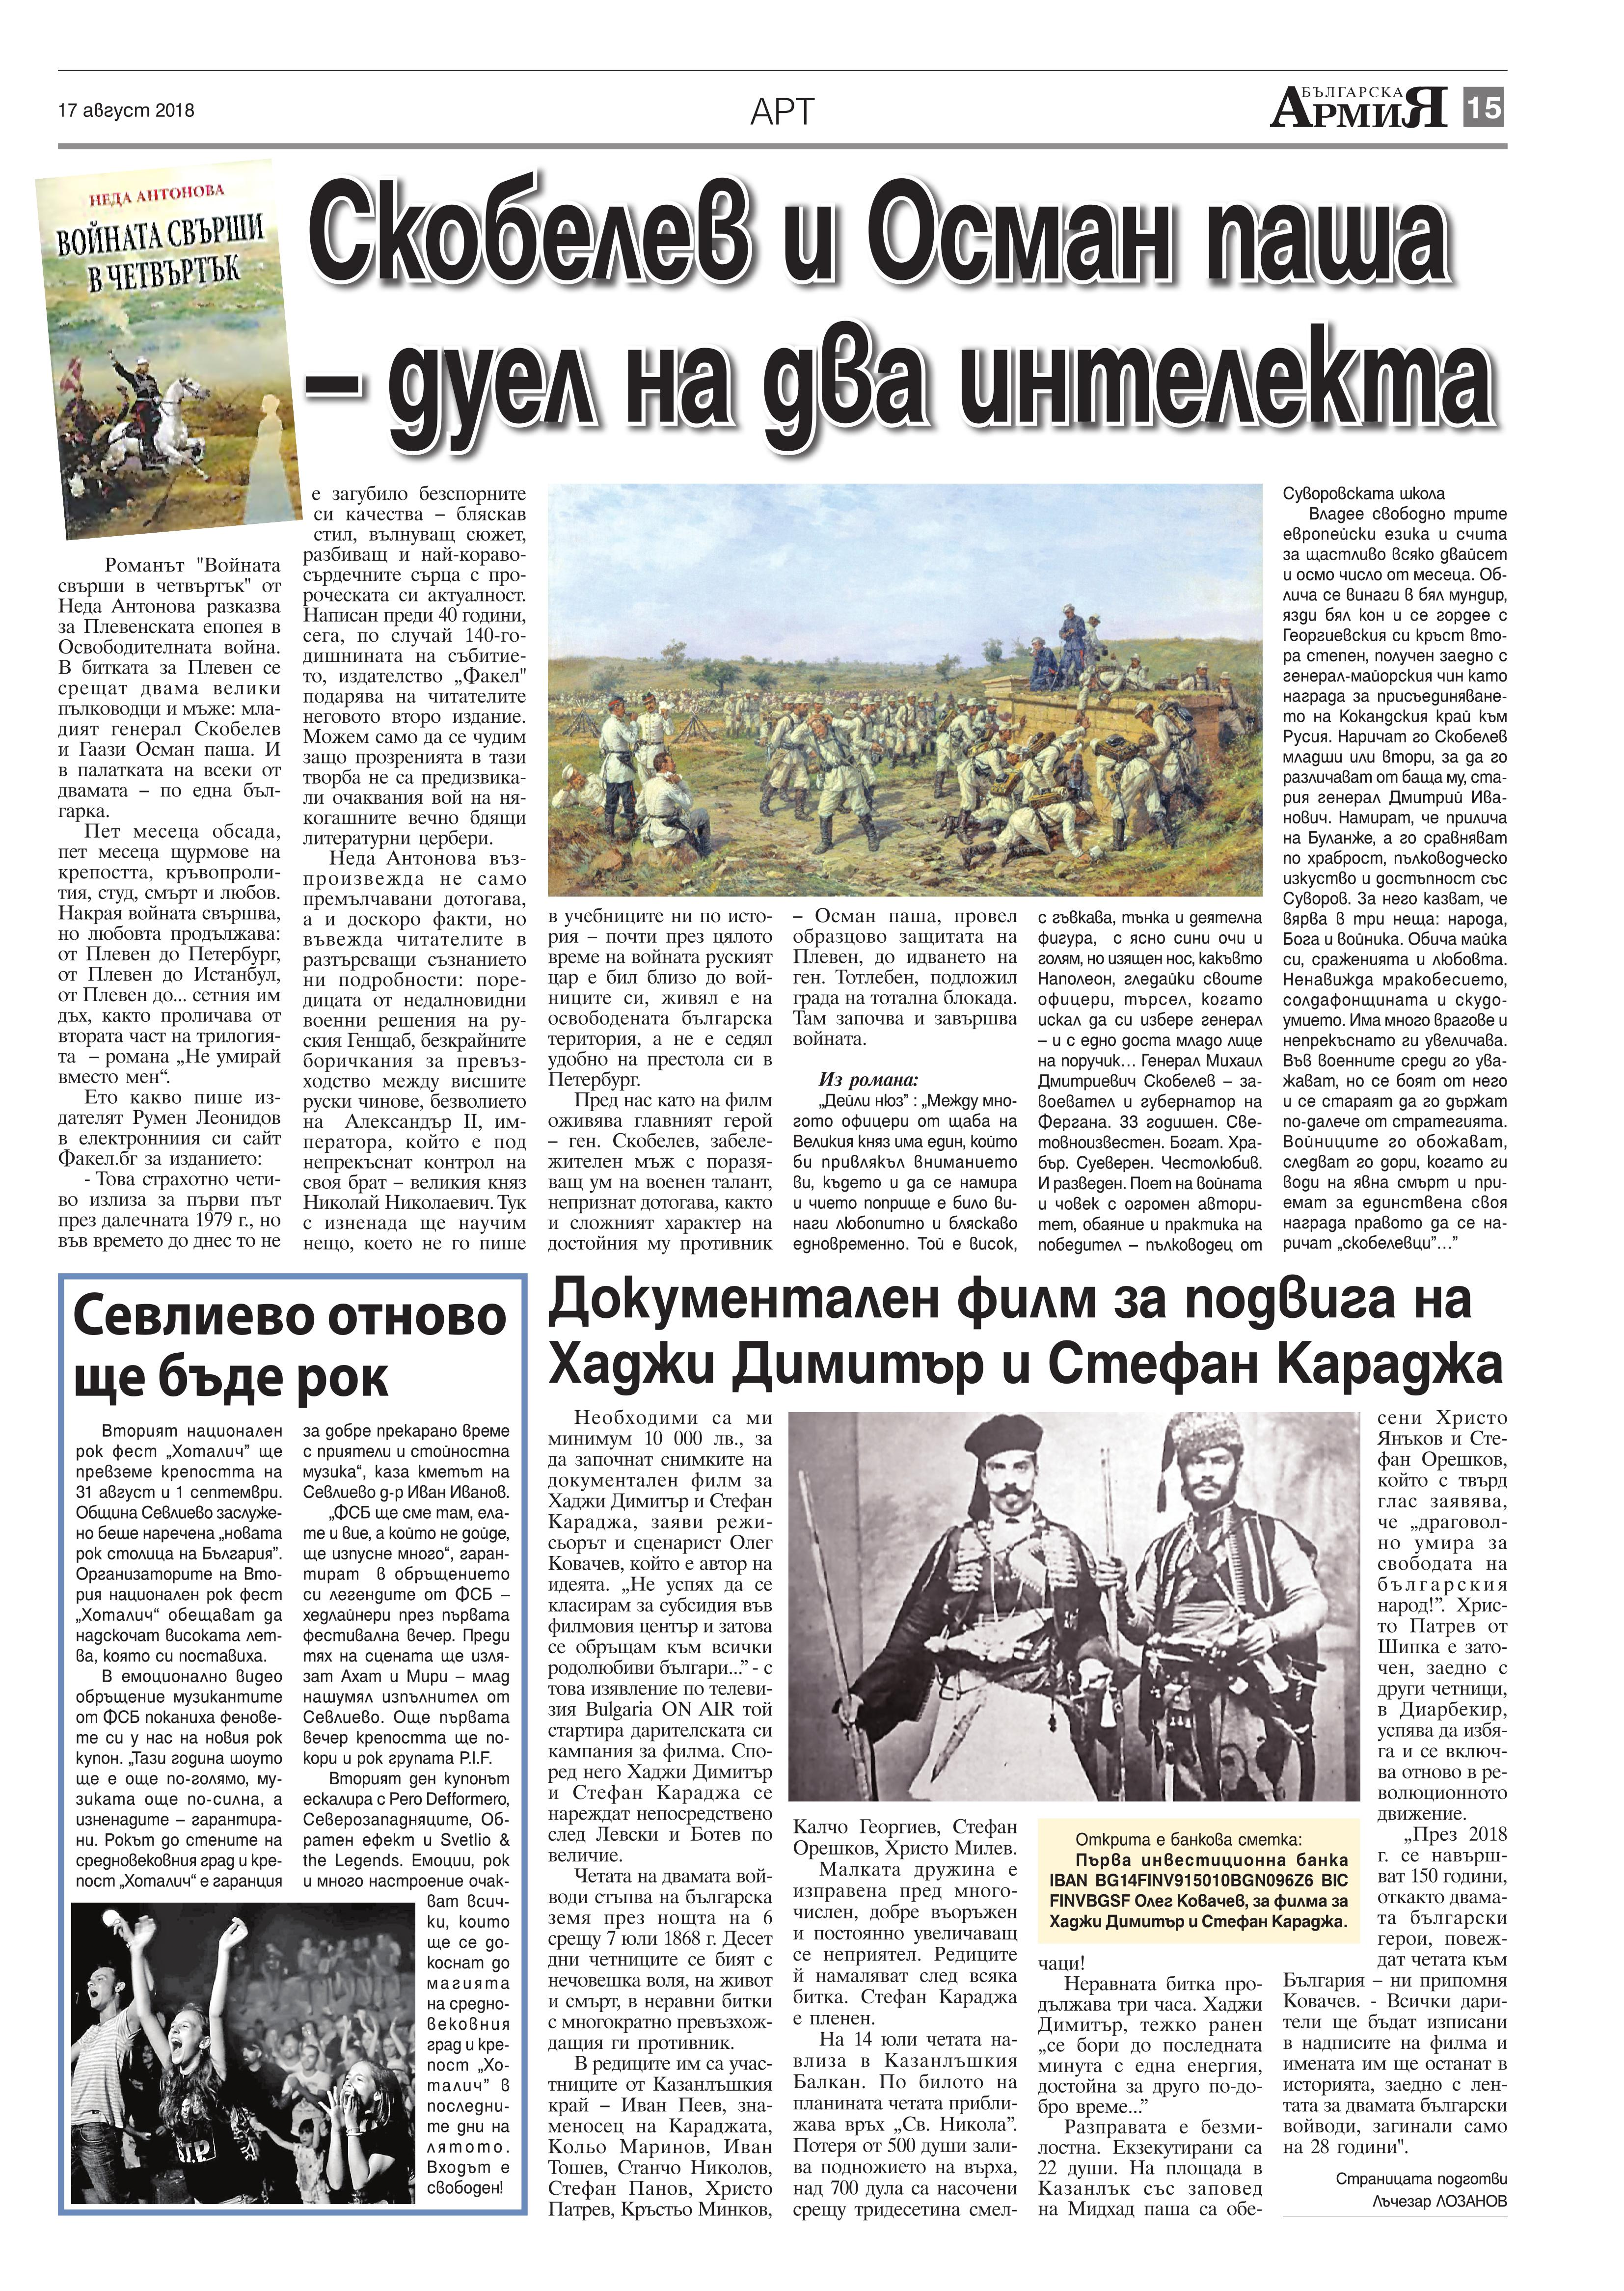 https://armymedia.bg/wp-content/uploads/2015/06/15.page1_-62.jpg